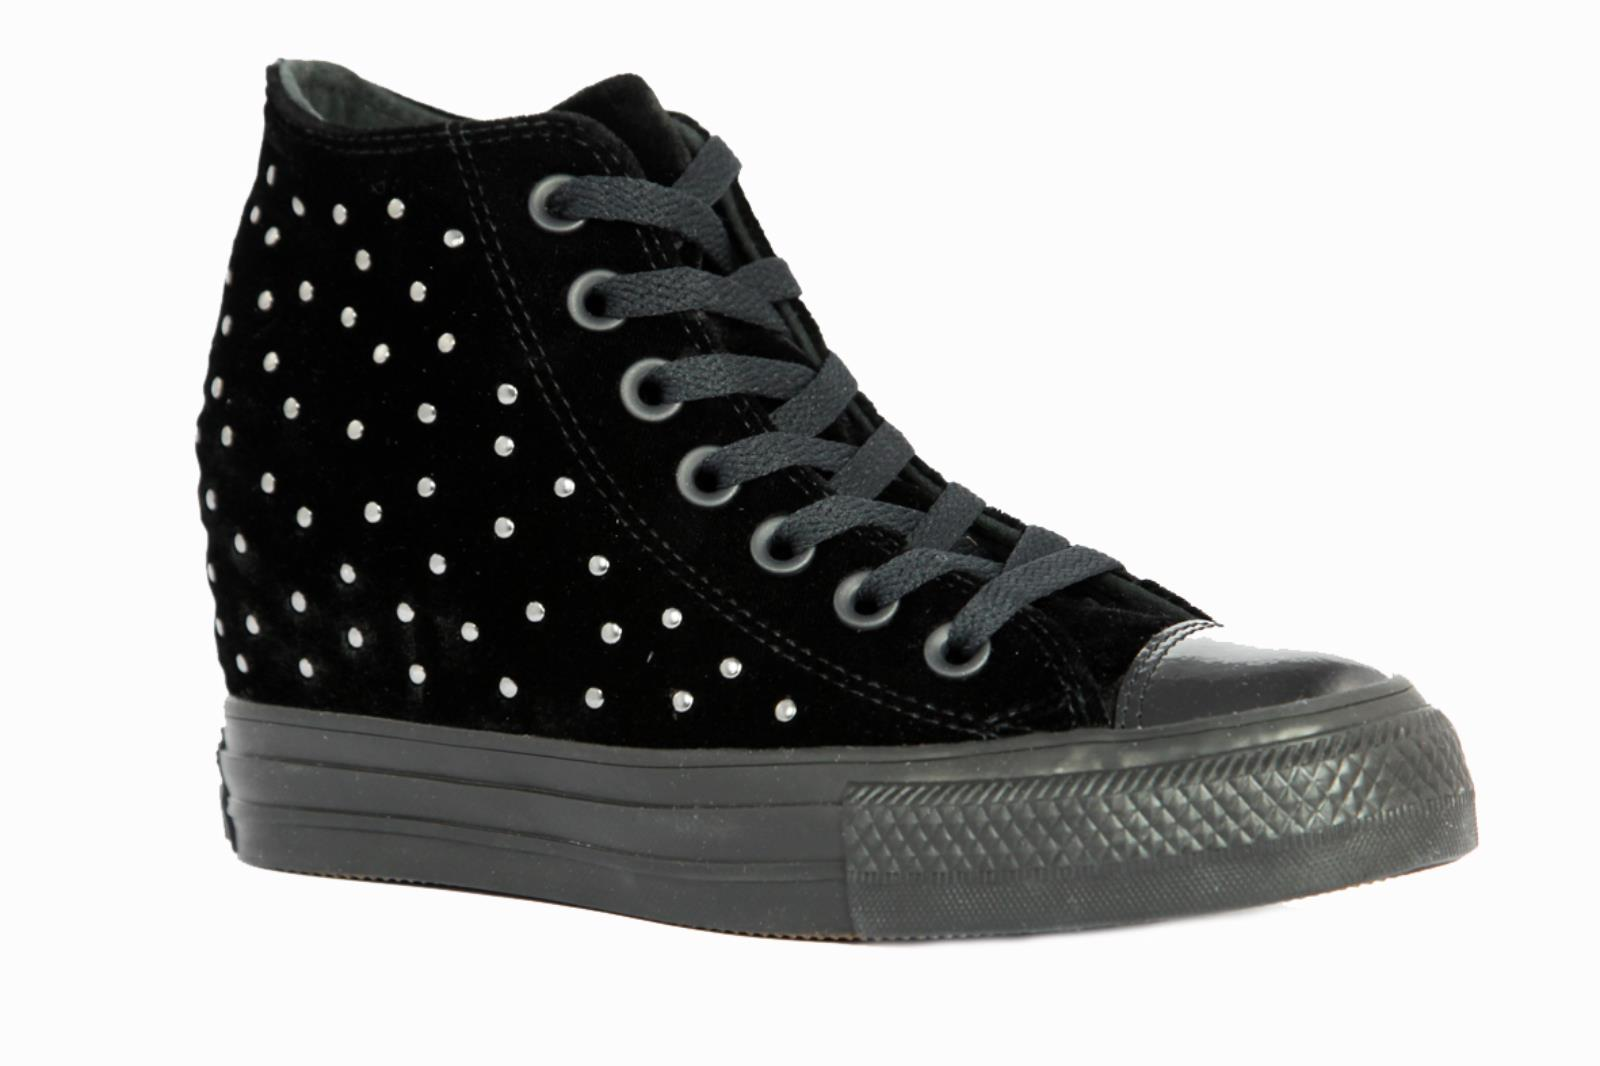 Sneakers Damens TESSUTO Damens Sneakers  CONVERSE  NERO 38be83